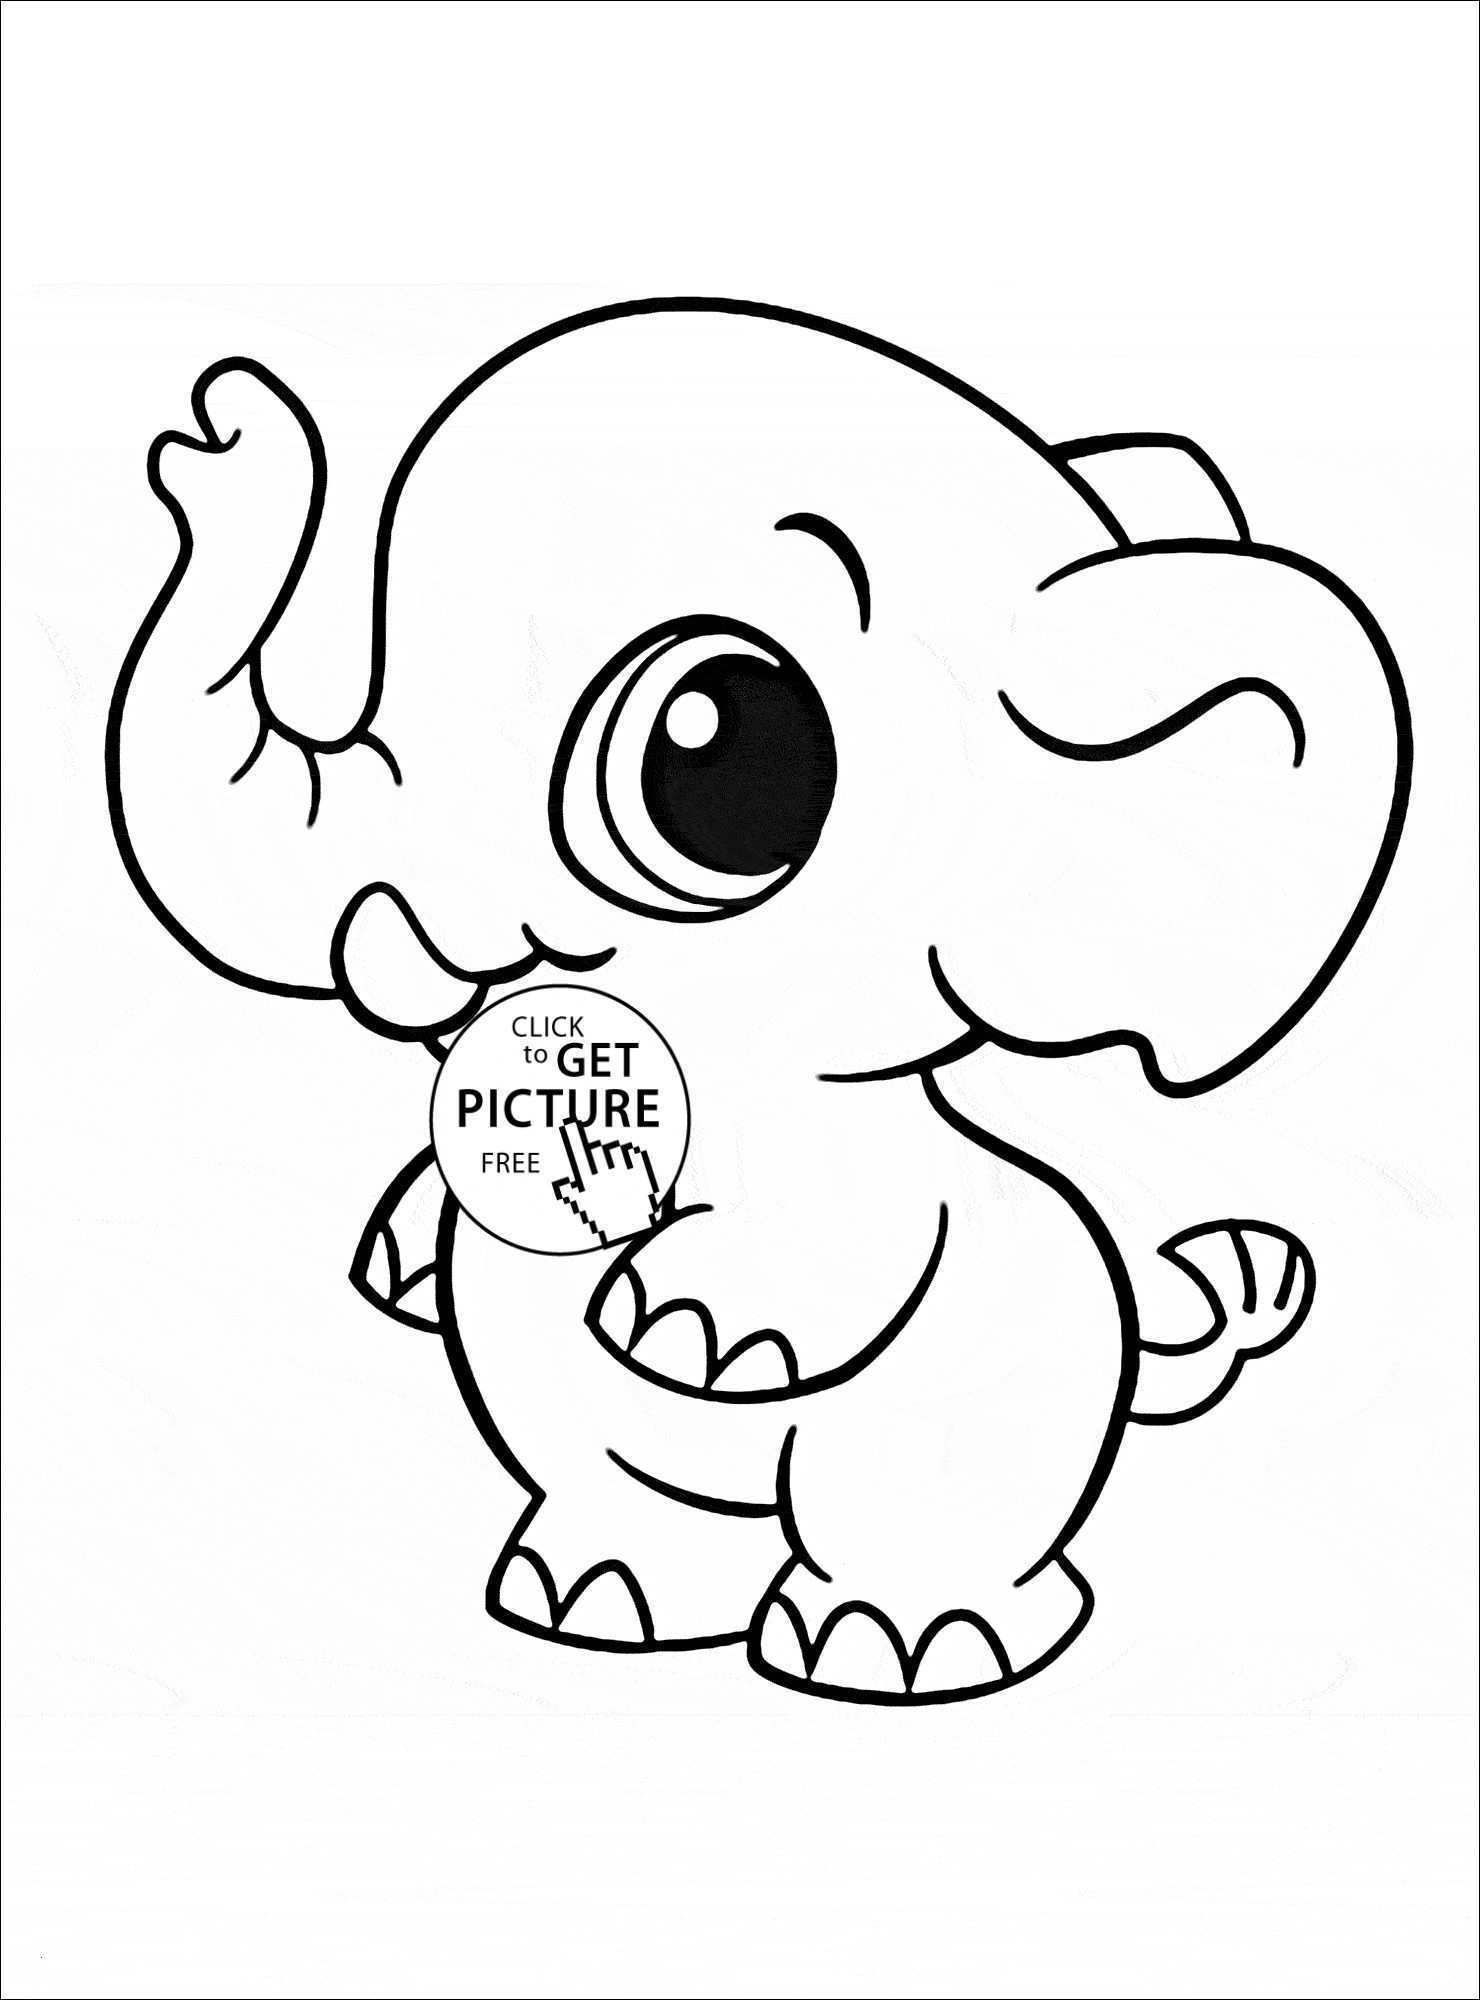 Pin By Dwi Bagas On Ausmalbilder Elephant Coloring Page Farm